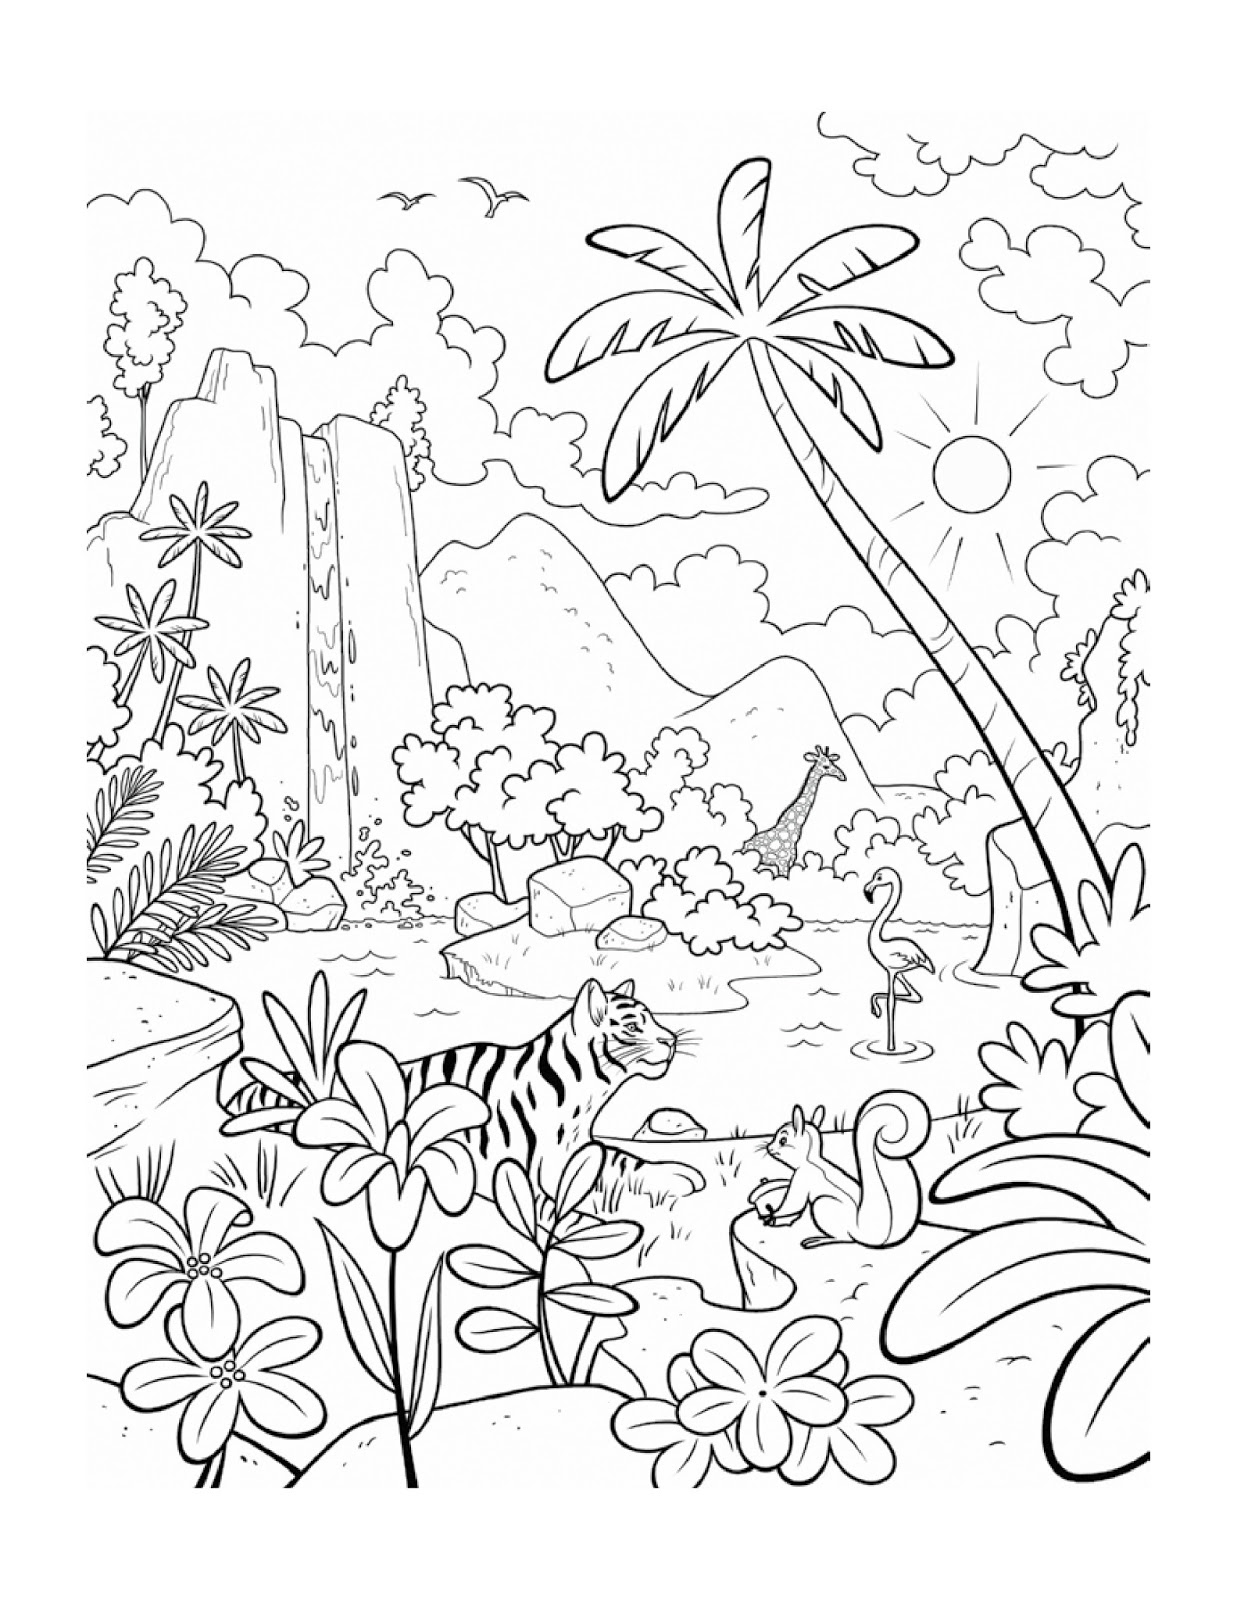 Coloring Pages Plants And Animals : Best coloring page for kids drawing painting